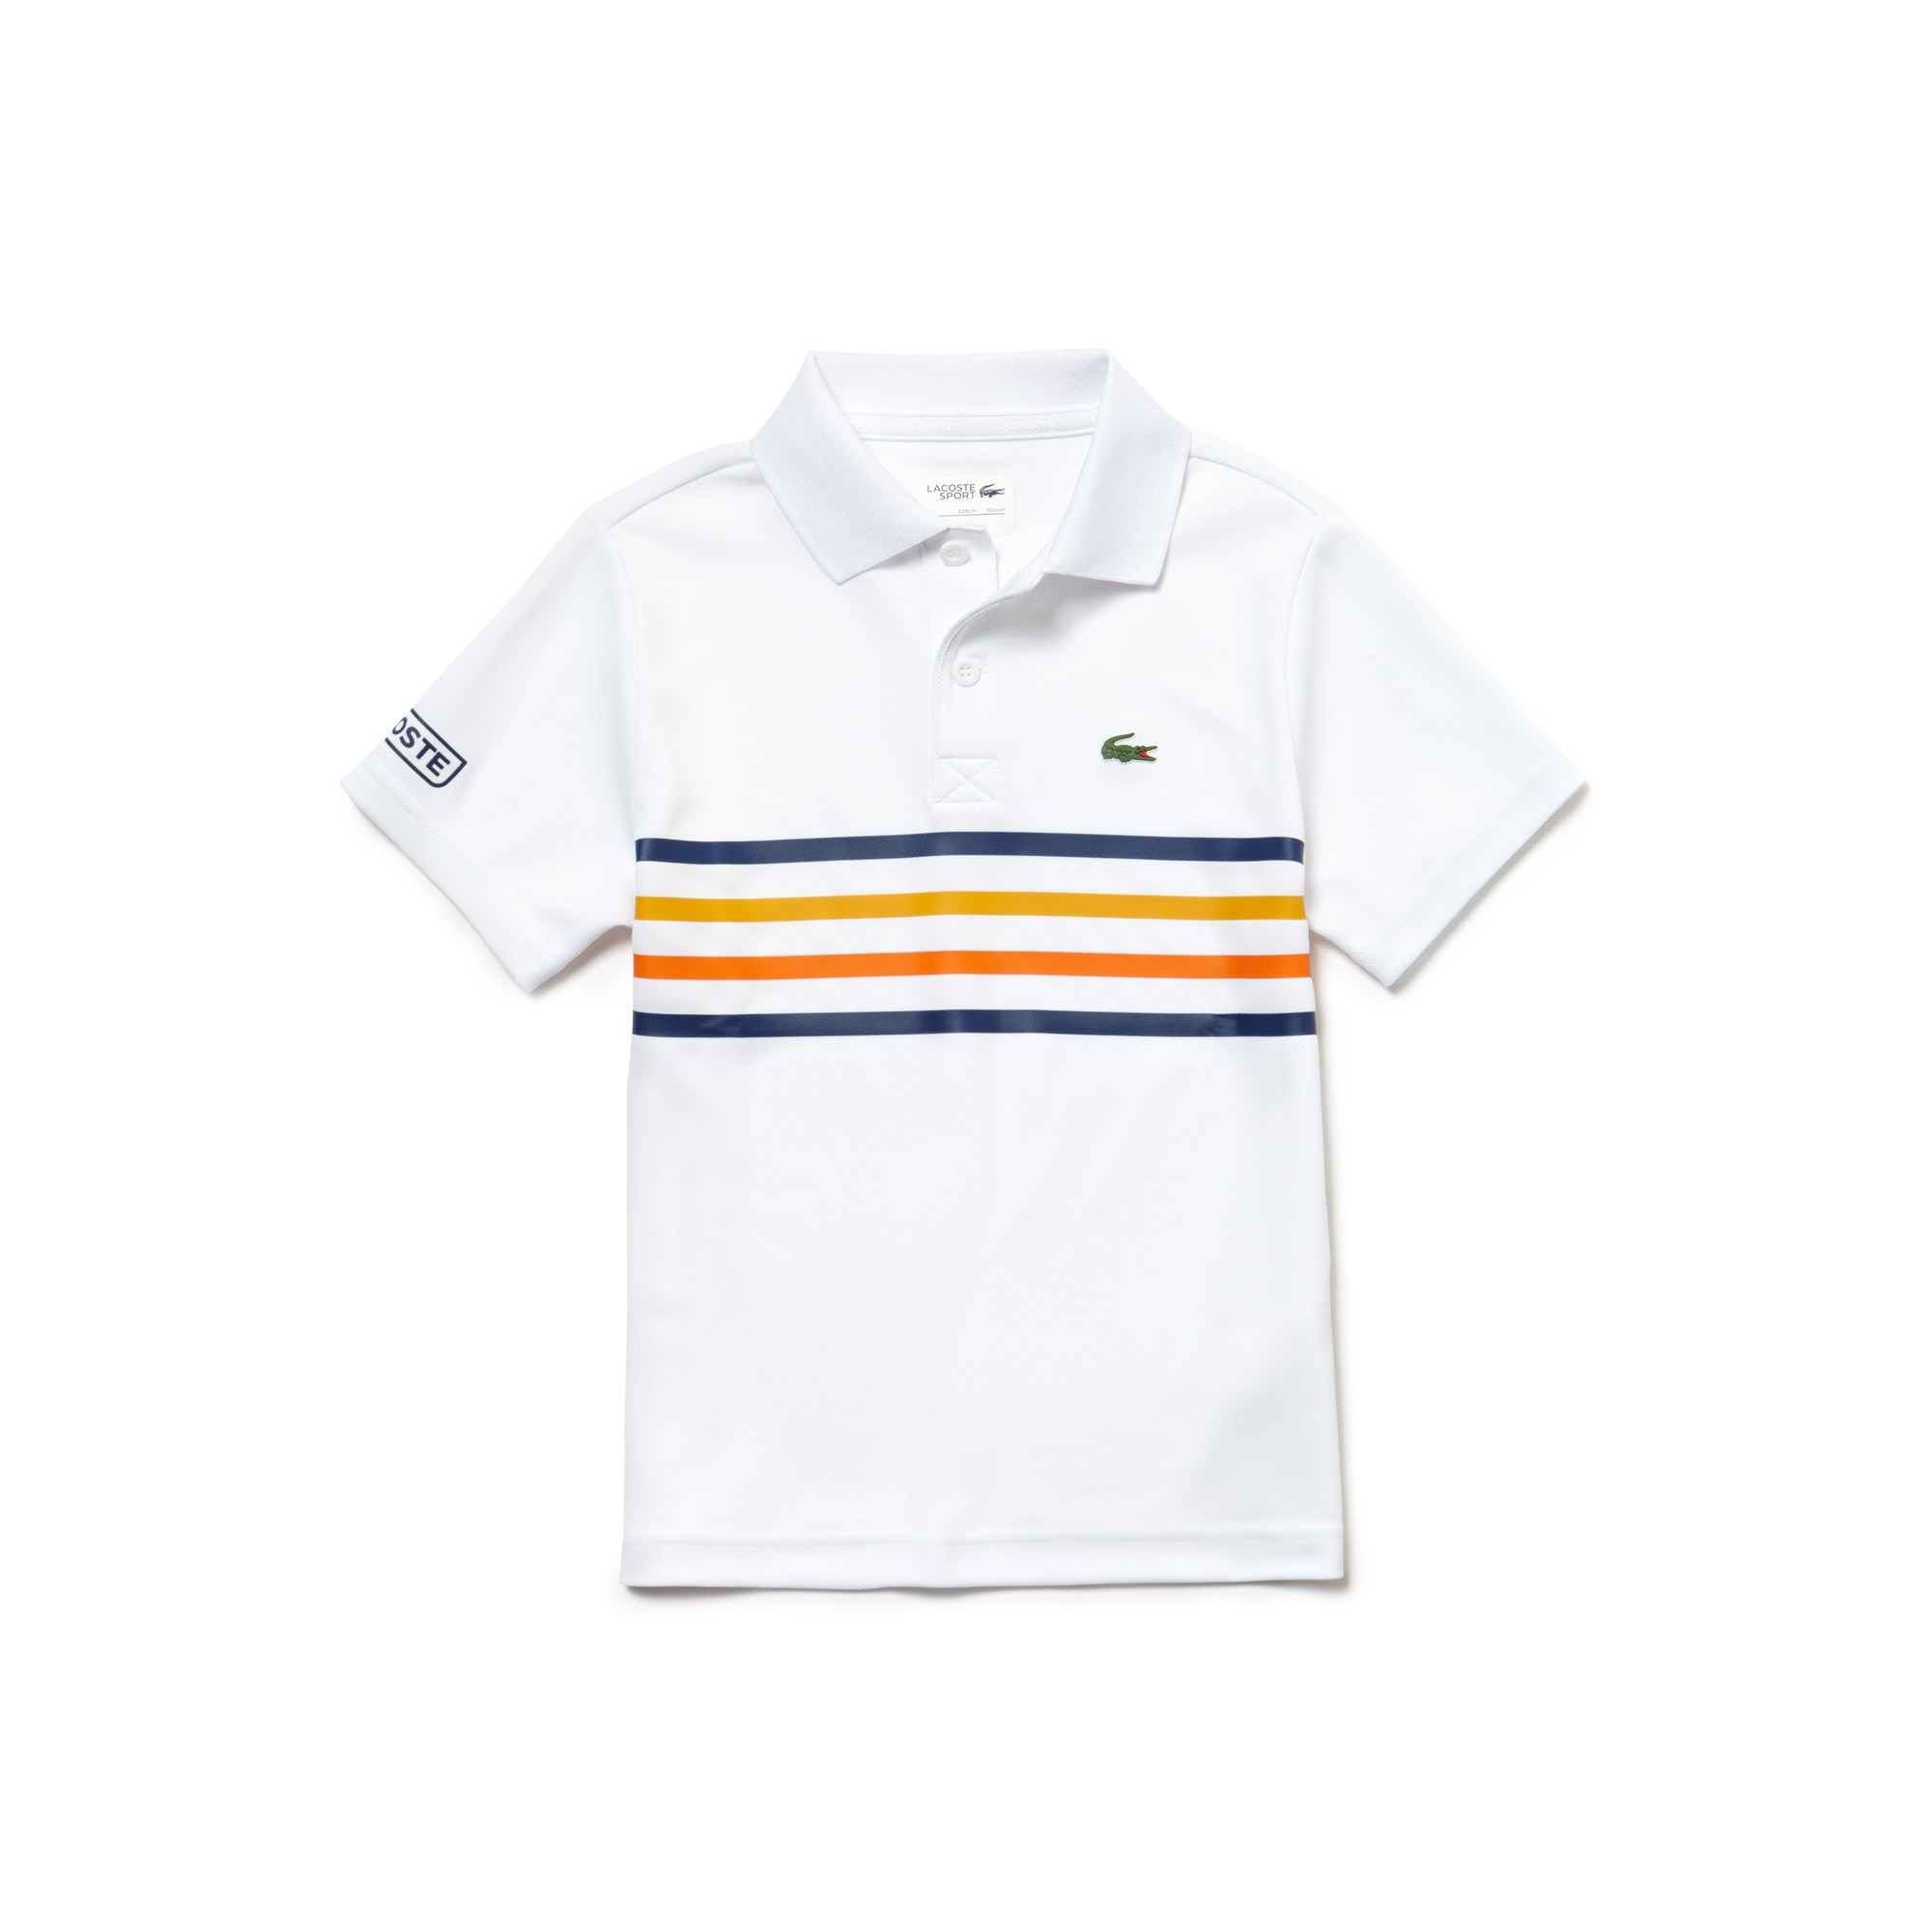 Boys' SPORT Colored Bands Tech Piqué Tennis Polo